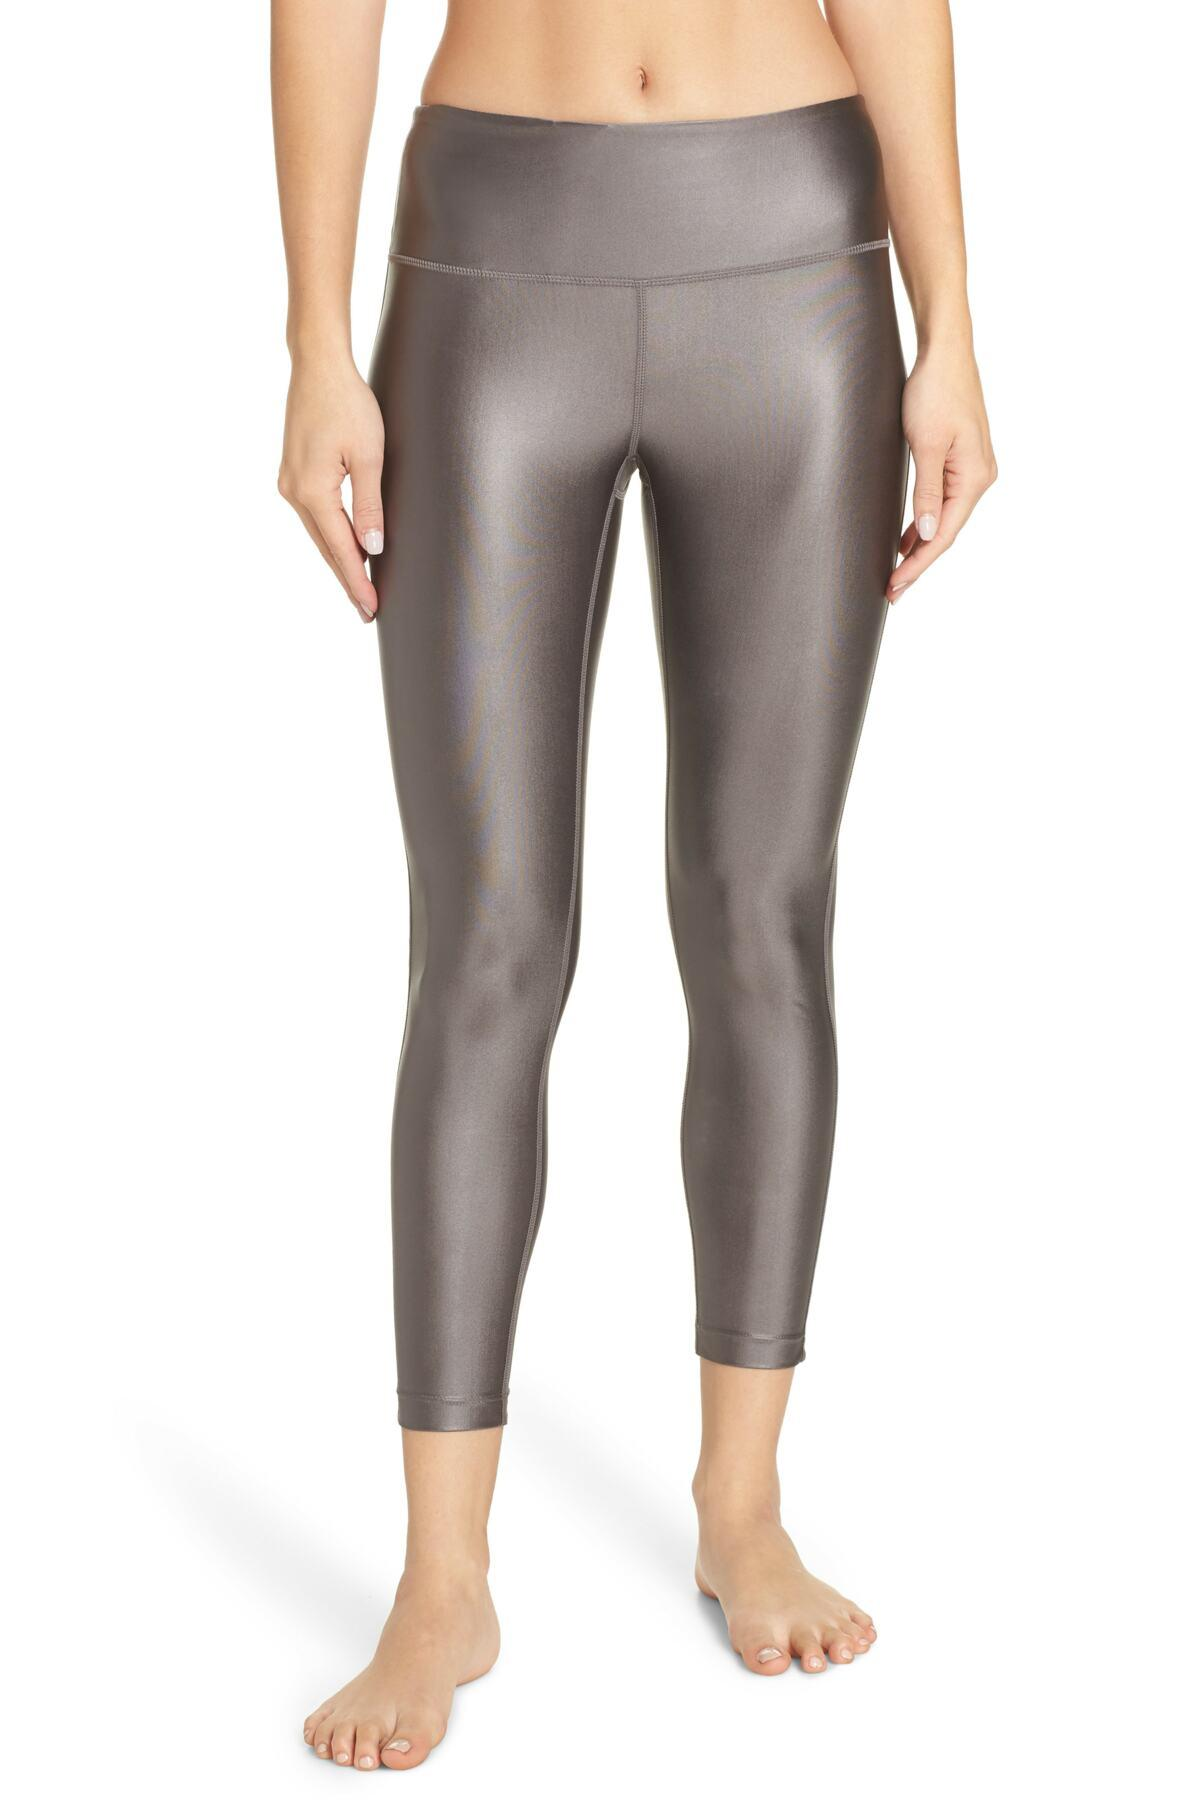 dee2ad457f6193 Lyst - Zella High Waist Shine 7/8 Leggings in Gray